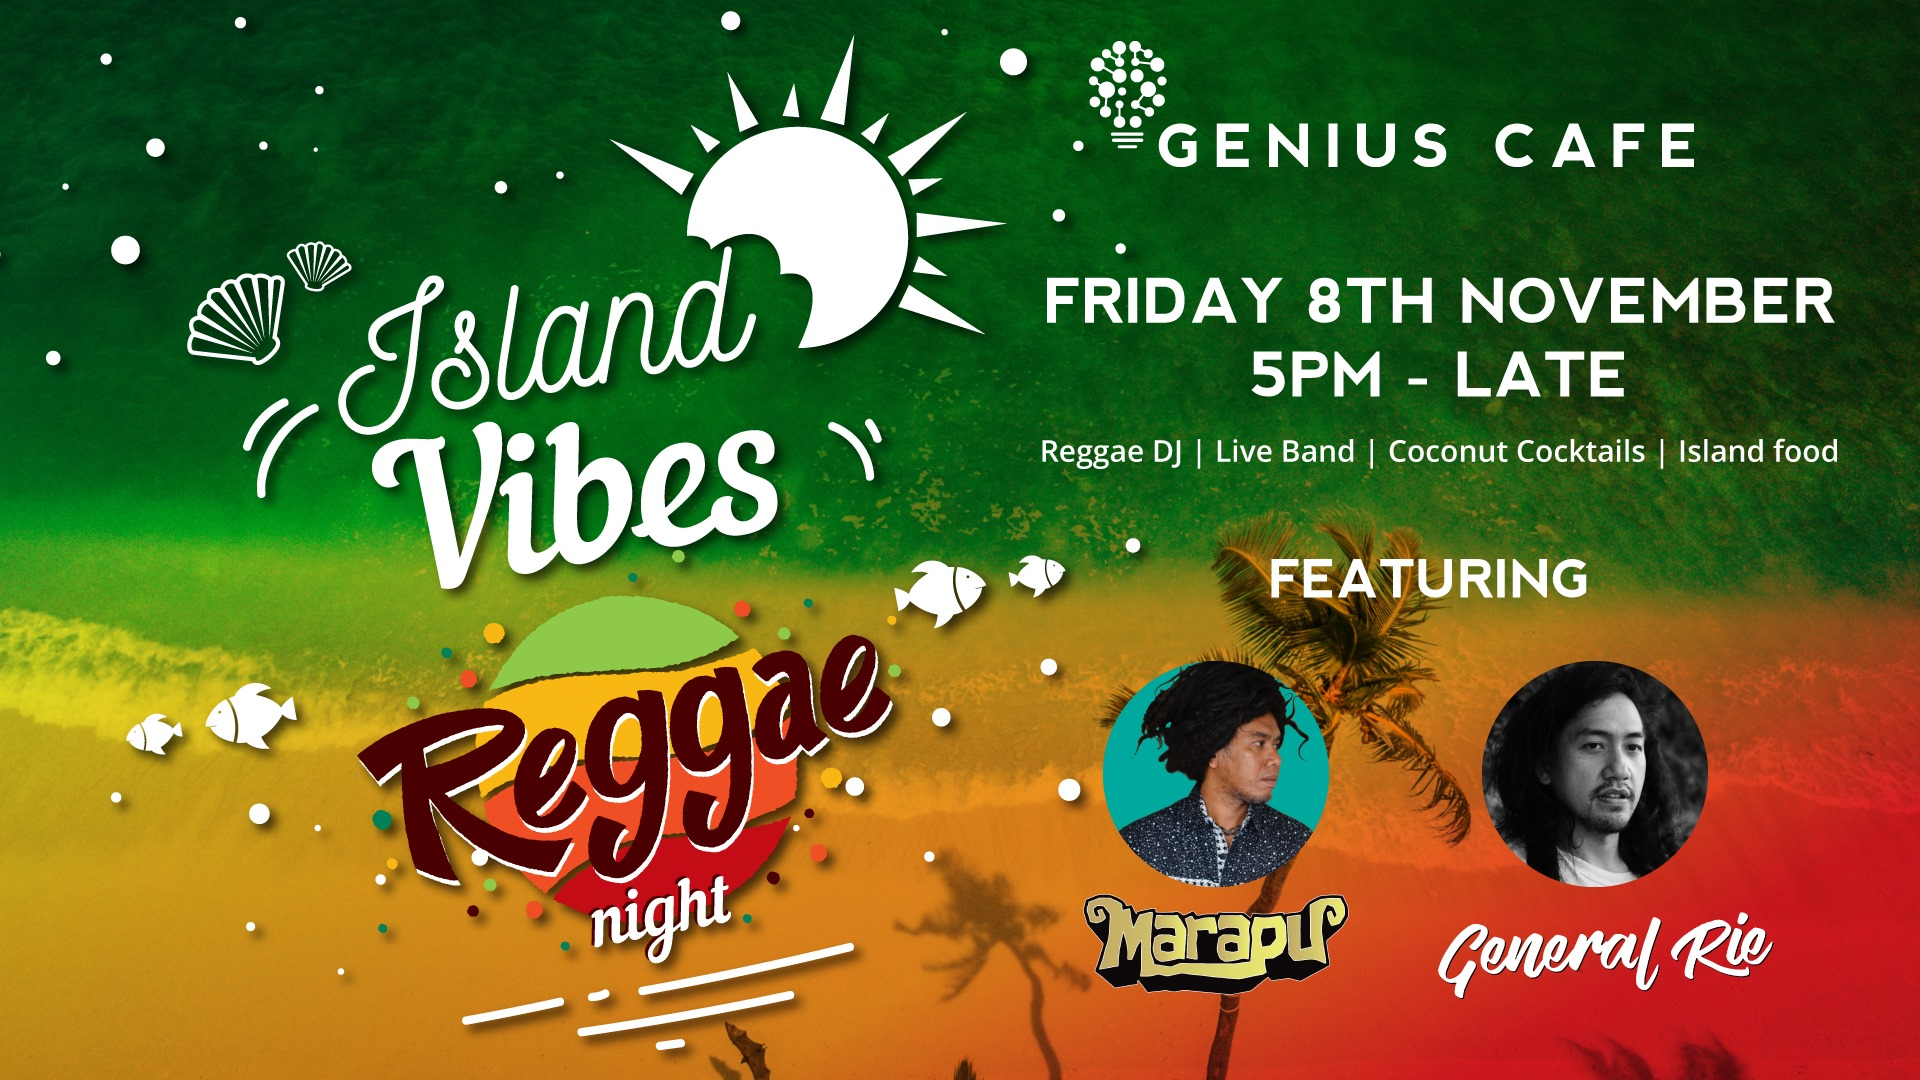 Island Vibes Reggae Night with Marapu